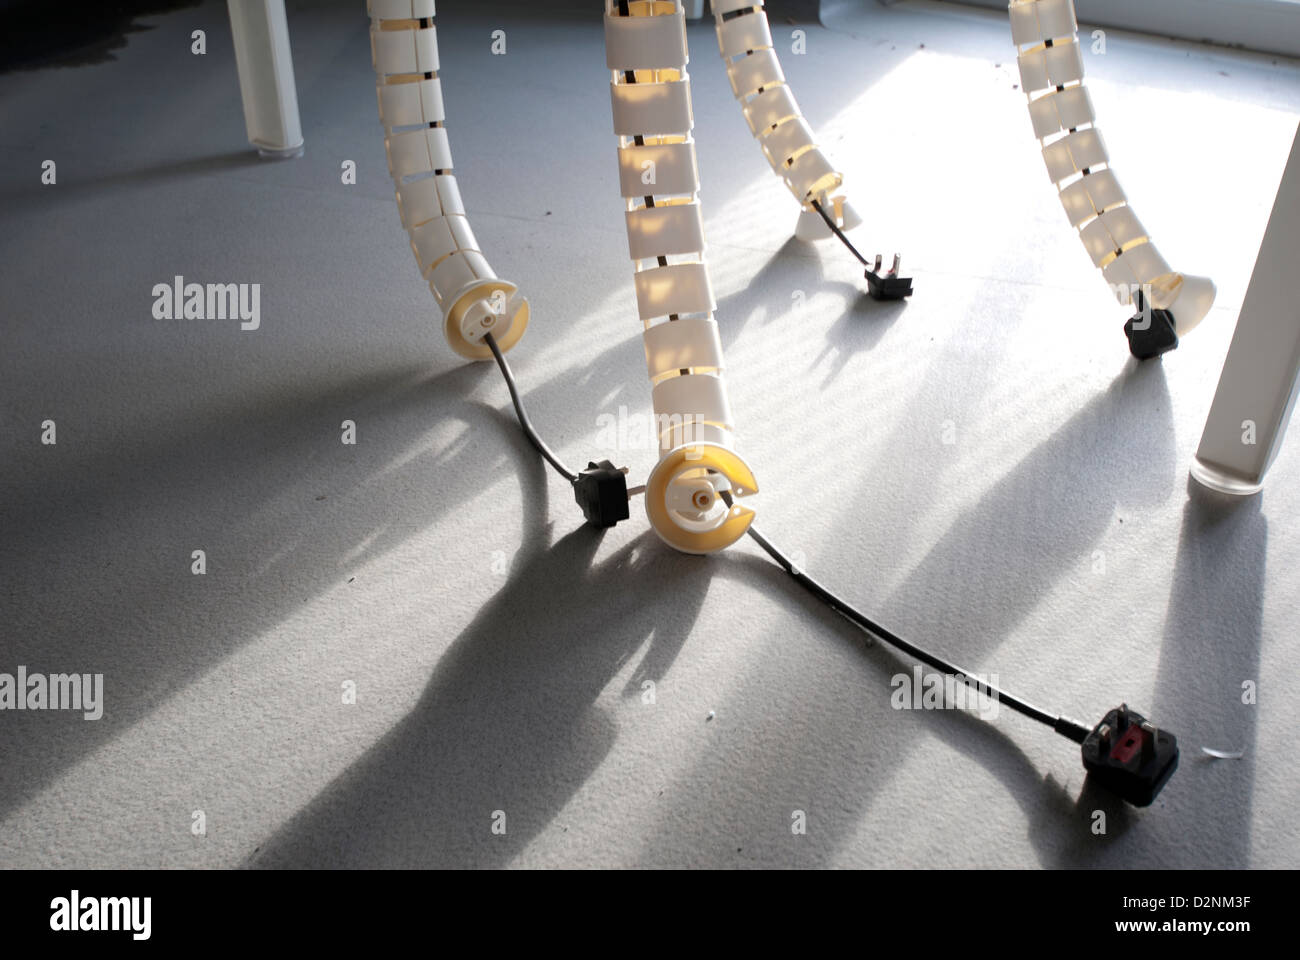 Shared Office Cable Management System With Four Unplugged Plugs Lying On  Office Floor With Morning Sun